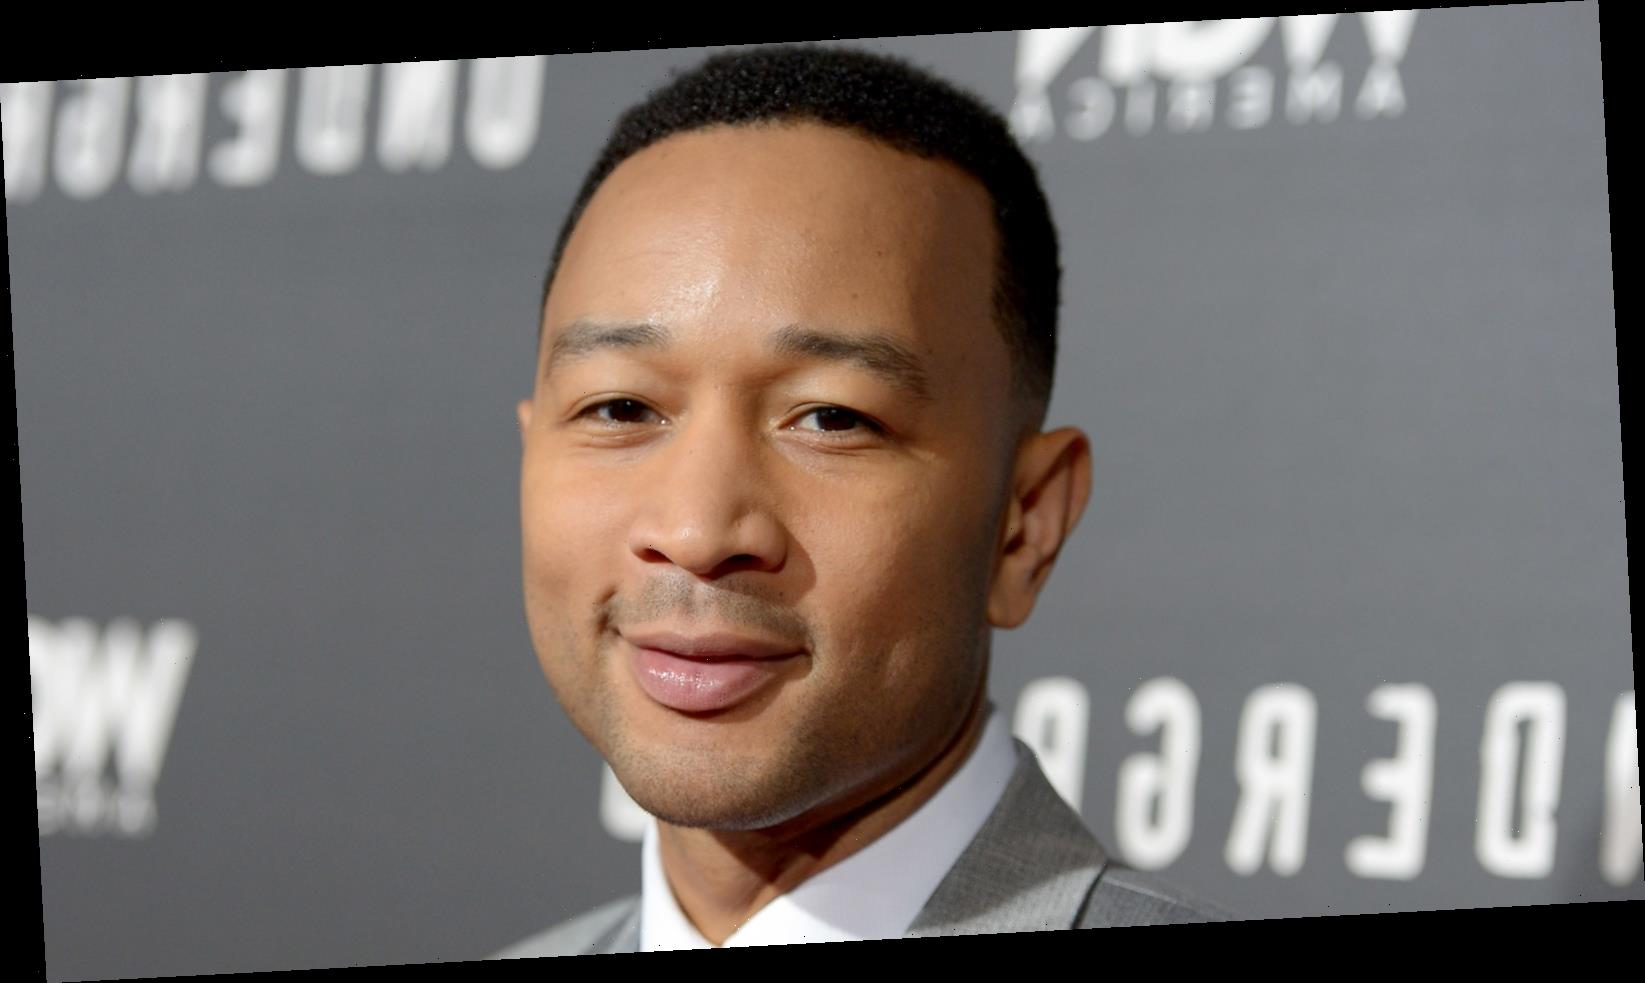 John Legend's Net Worth Is Higher Than You Might Think